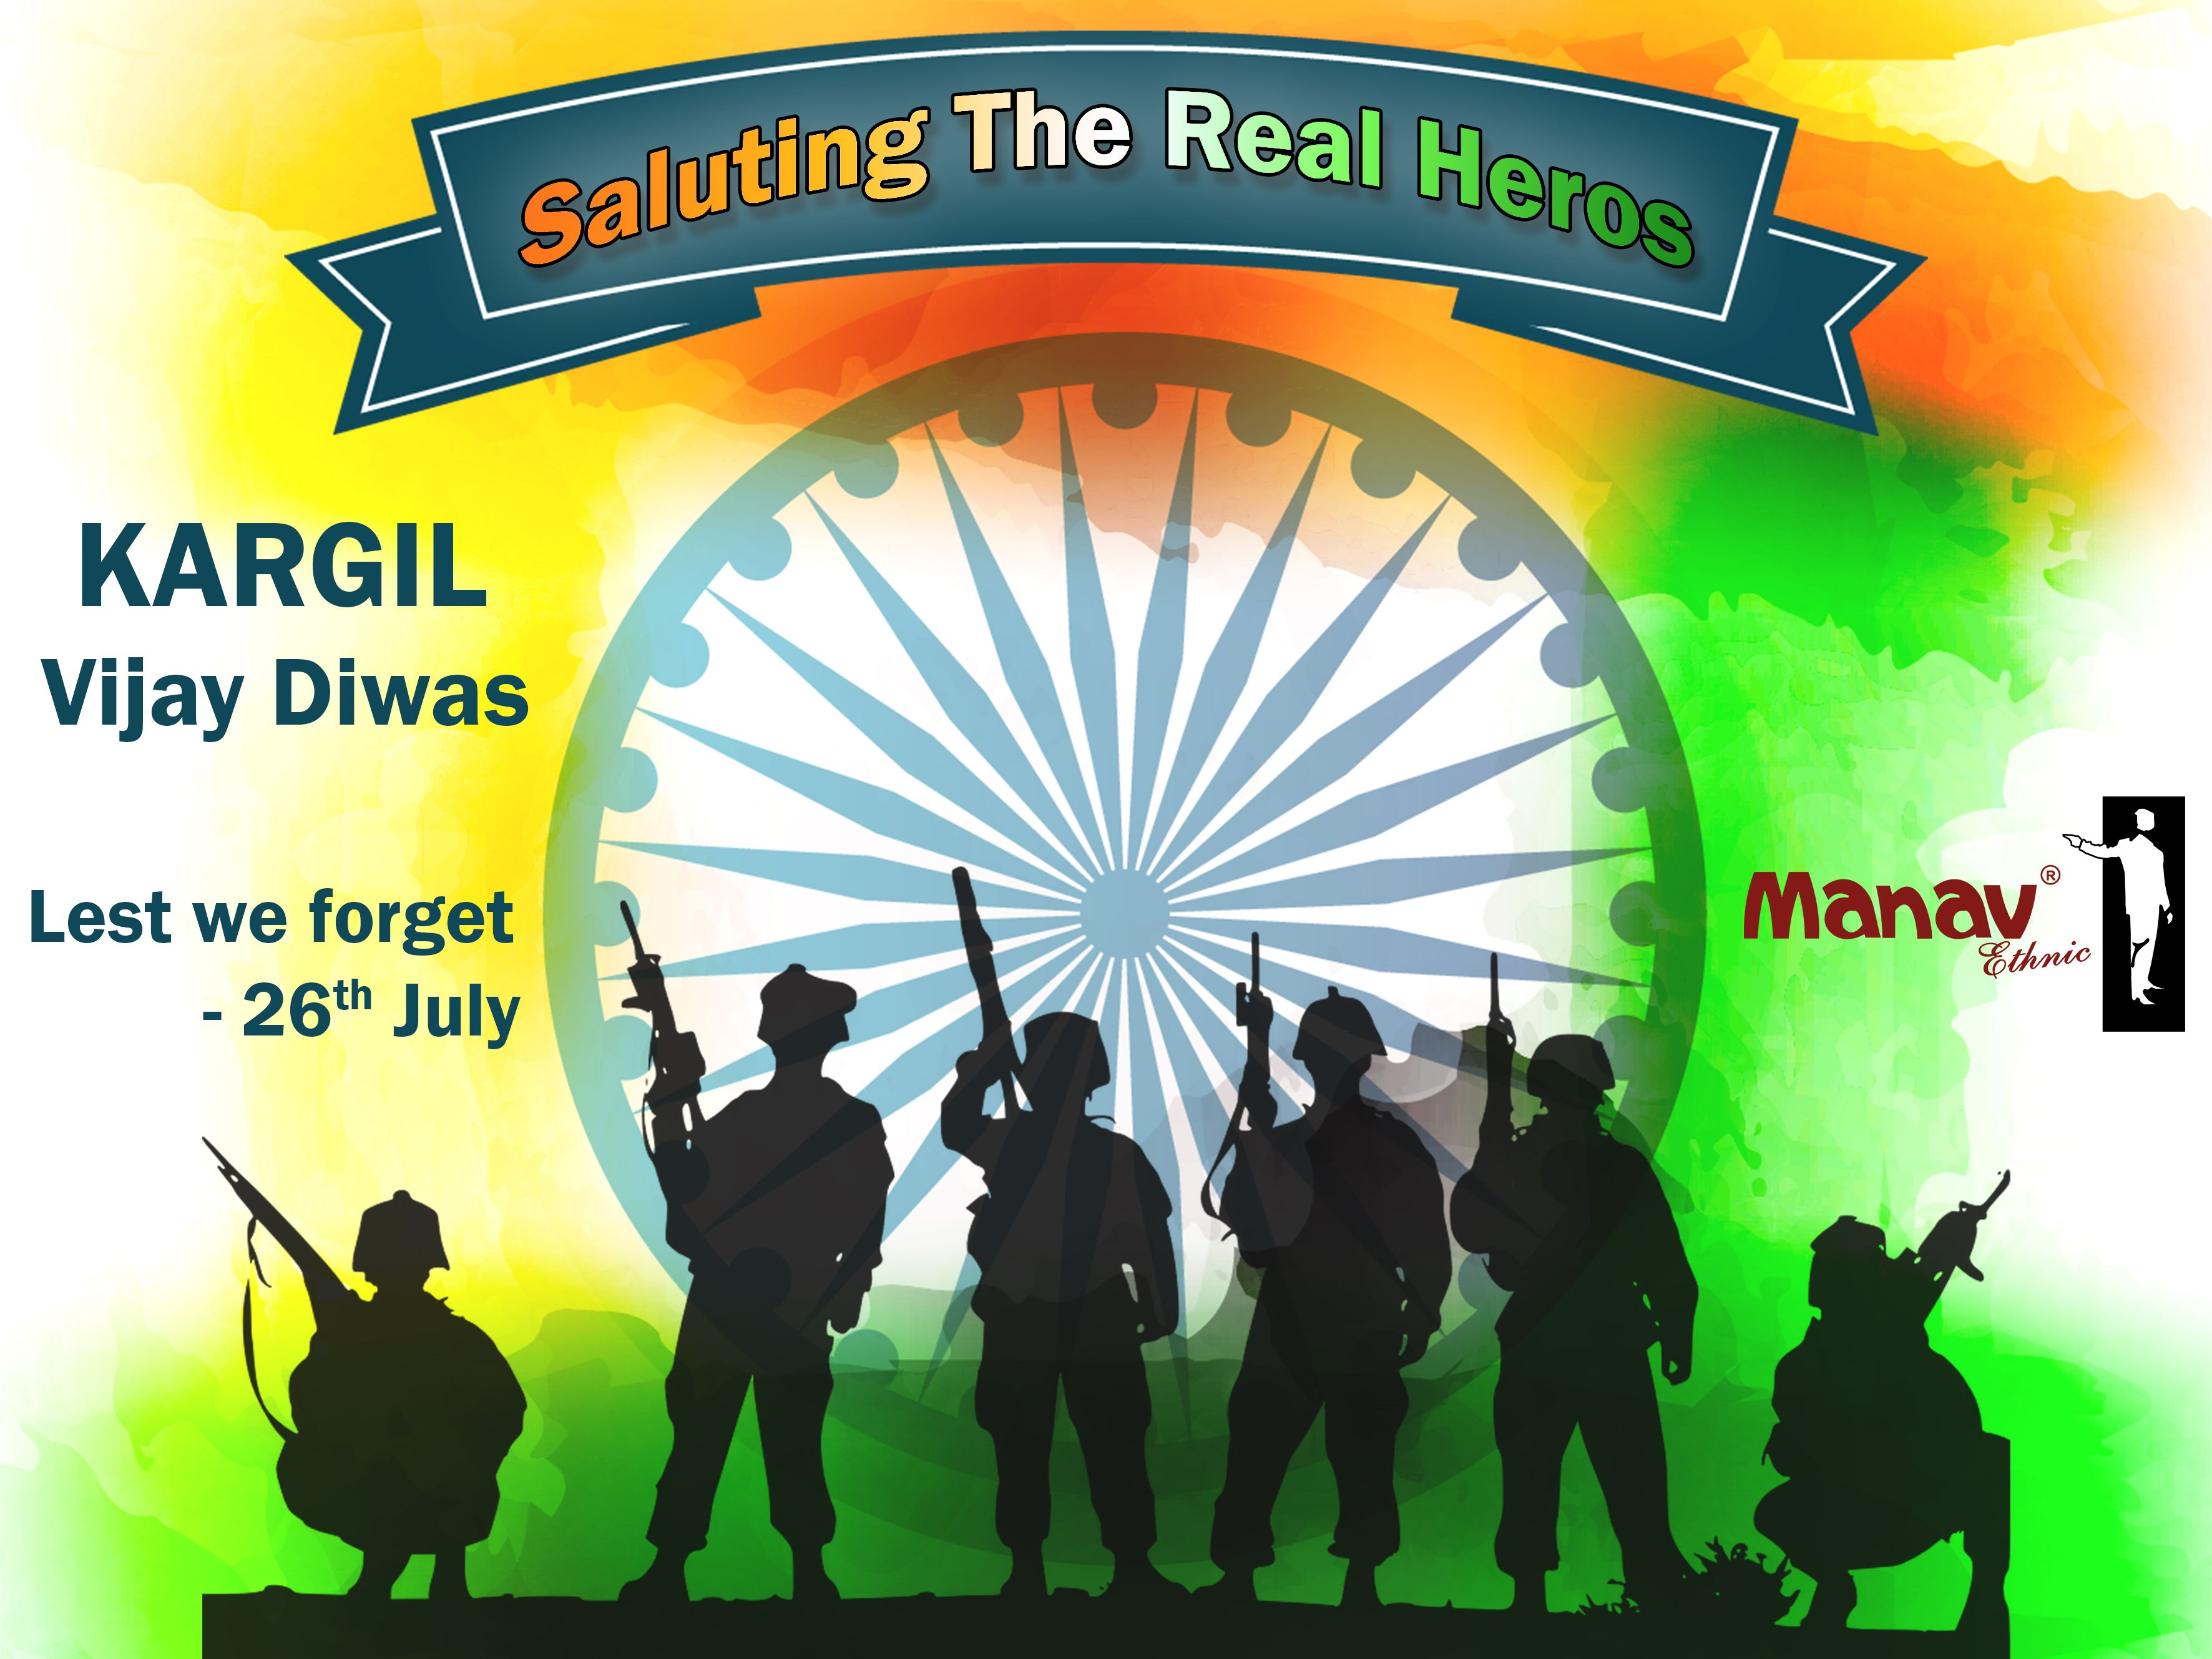 527 Indian Army Soldiers Made The Ultimate Sacrifice To Uphold The Honor And Integrity Of The Union Of India The Fa Army Drawing Kargil War Indian Army Quotes